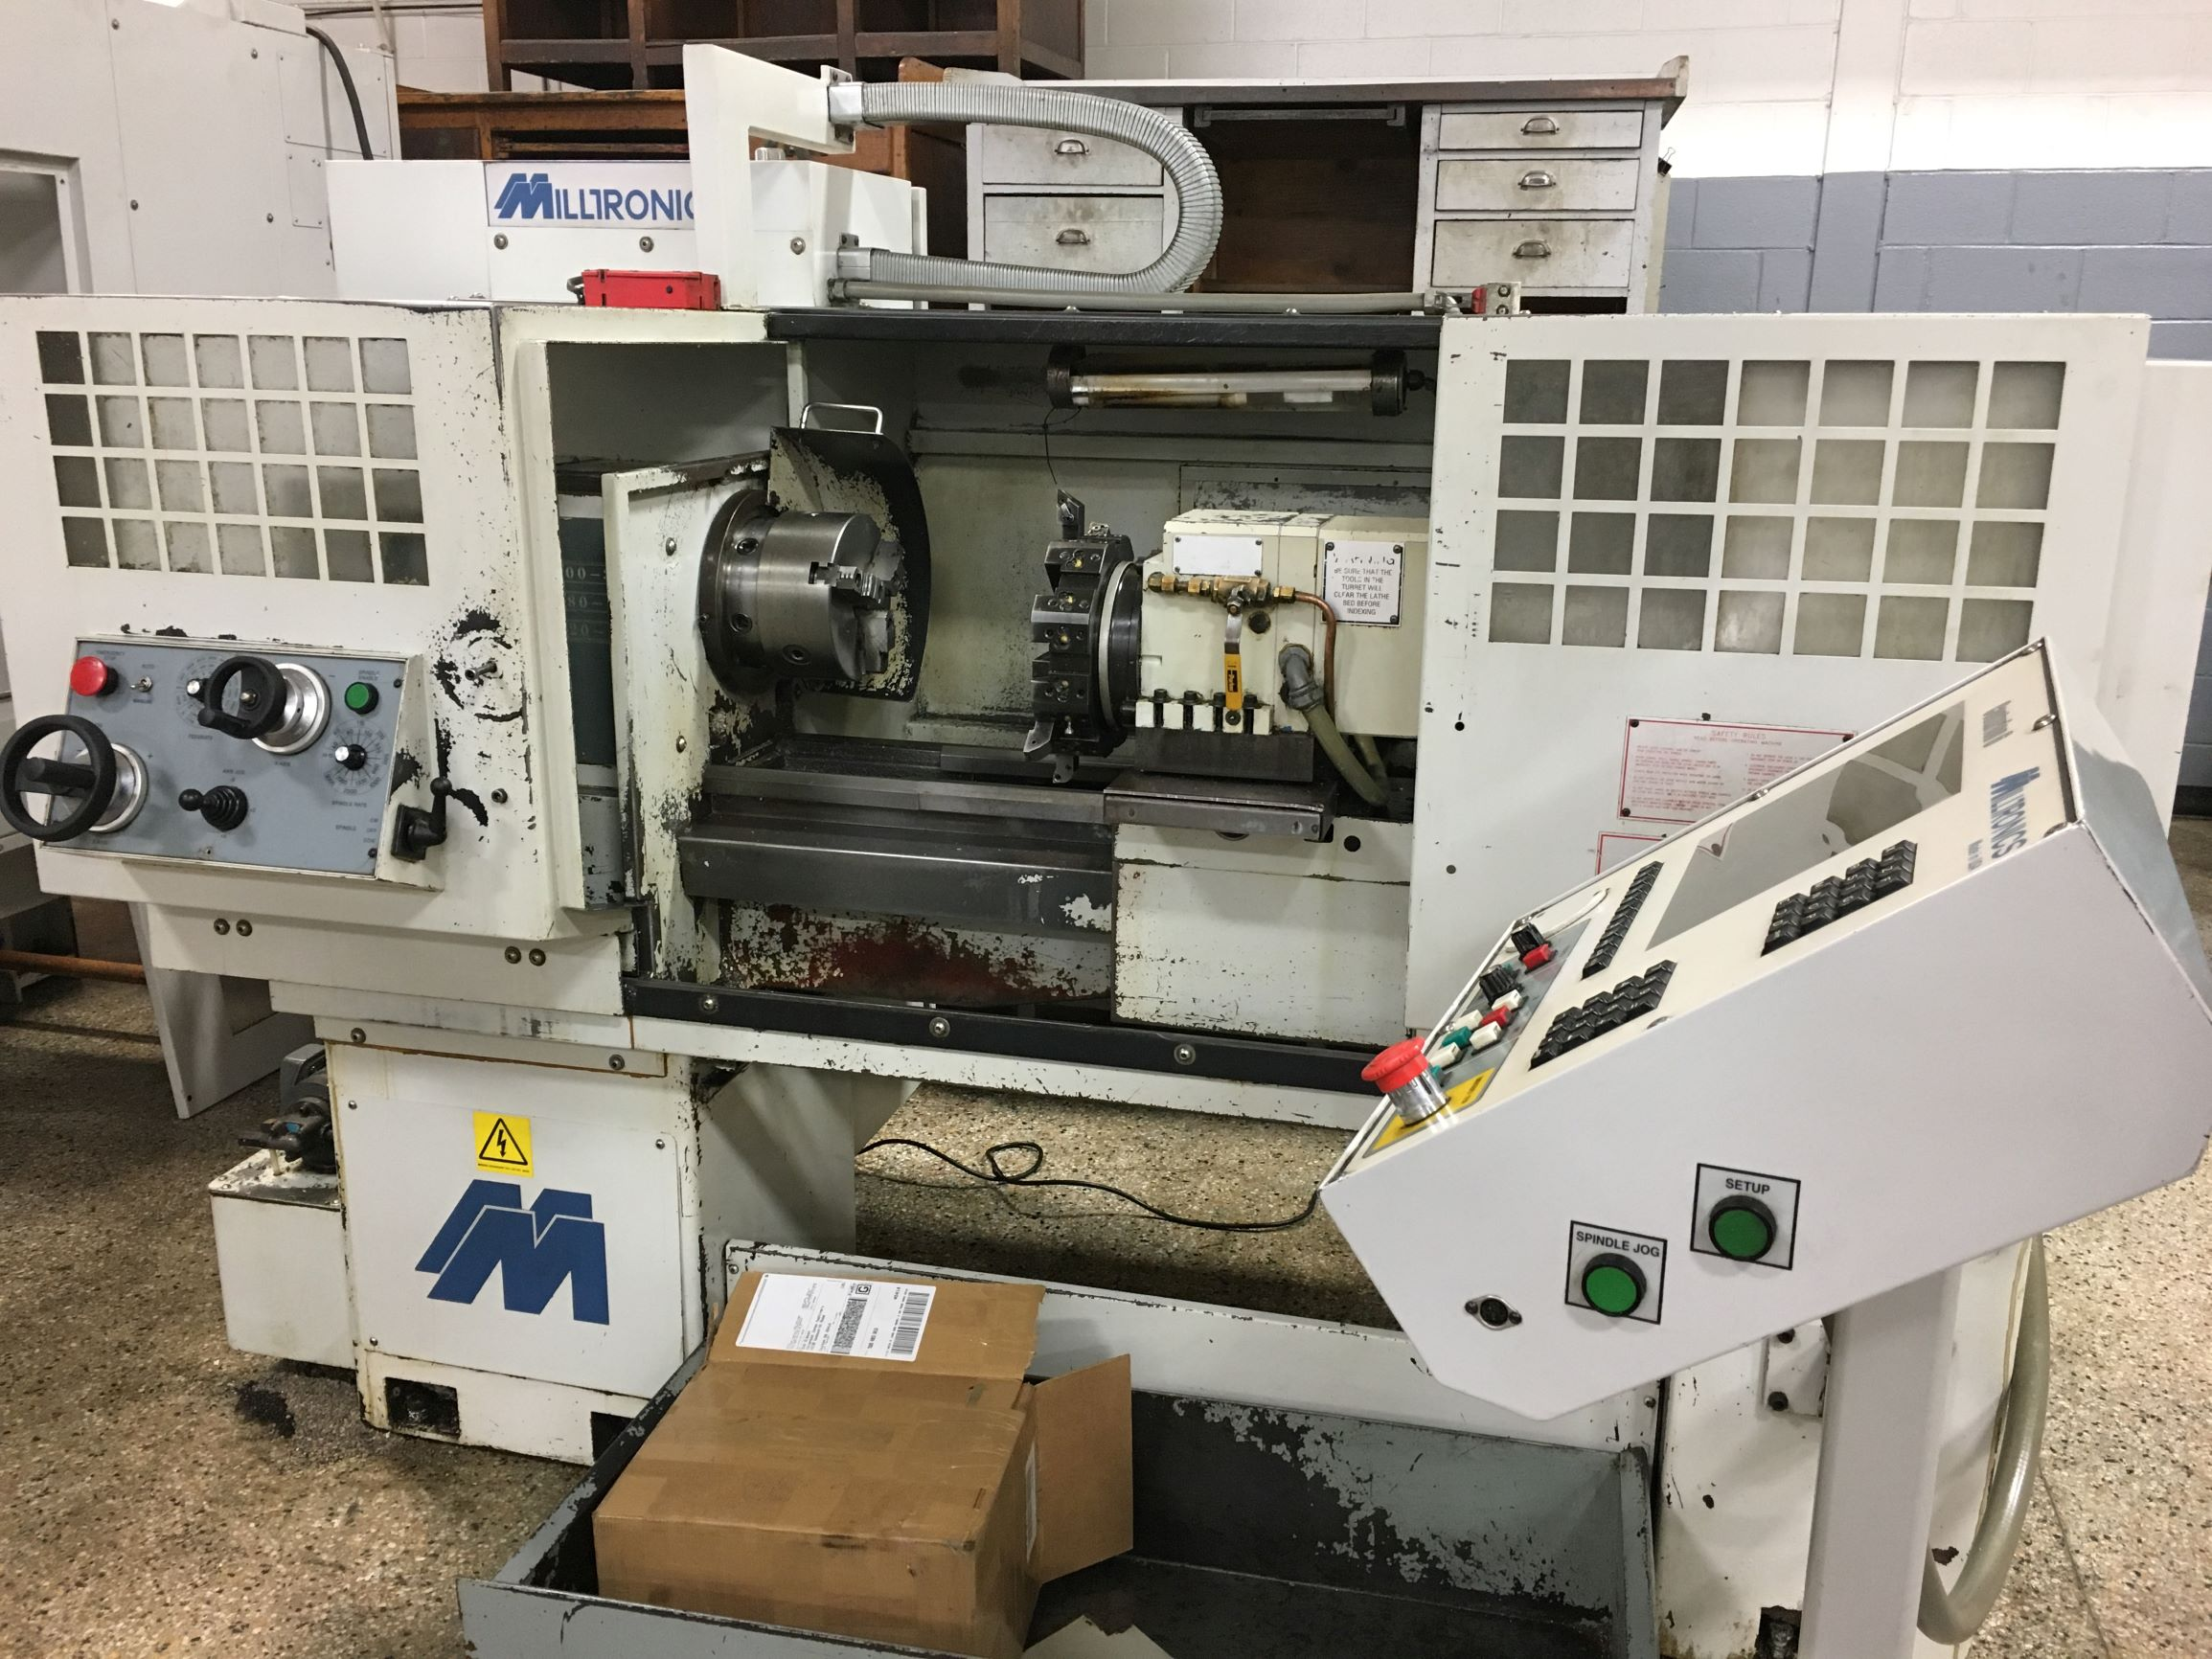 Milltronics ML15 CNC Lathe With Automatic Turret, S/N 6980, New 2001.